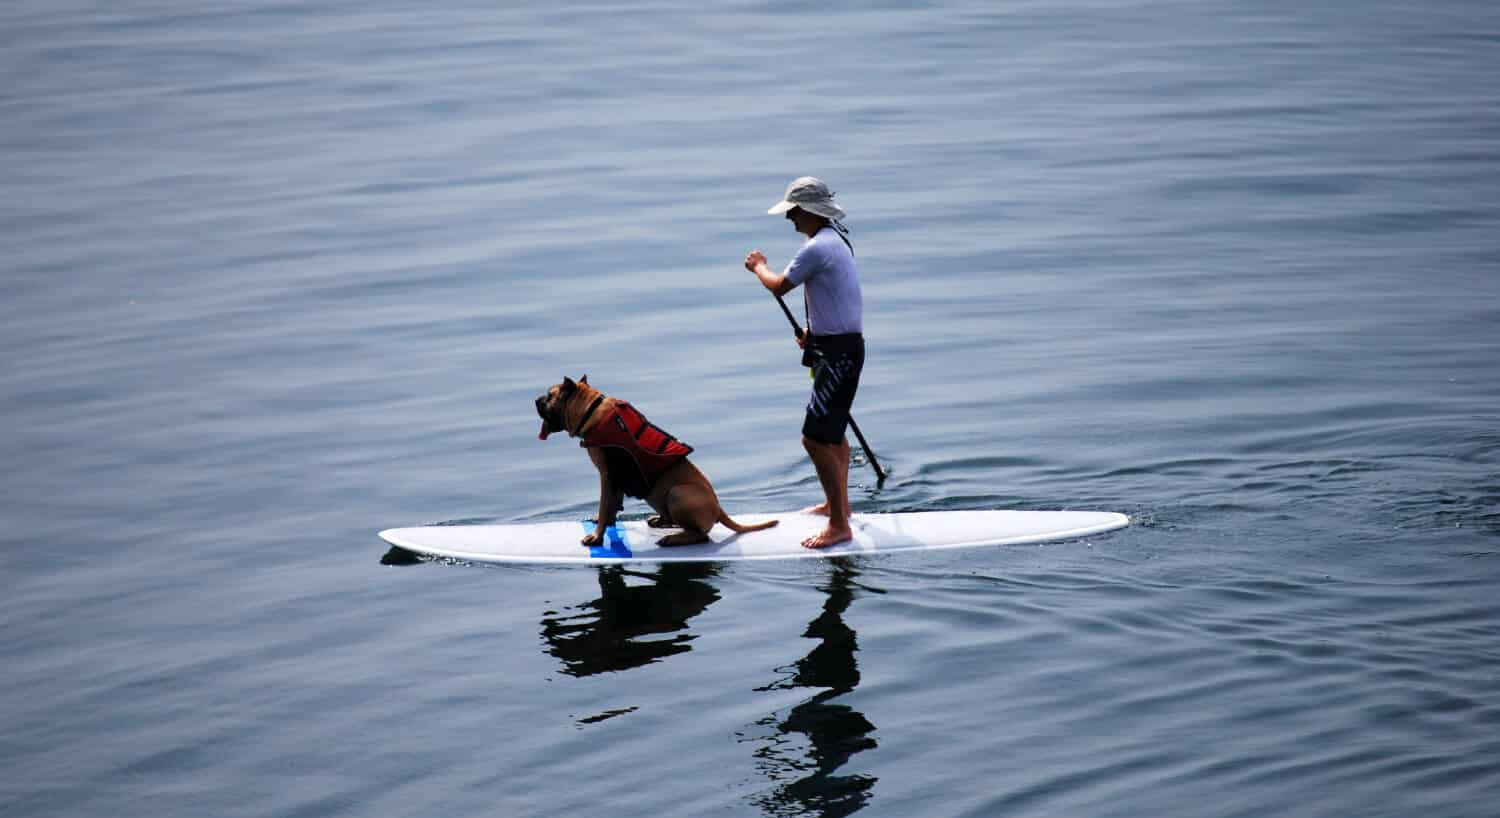 A dog rides on the front of a paddleboard, wearing a life jacket.